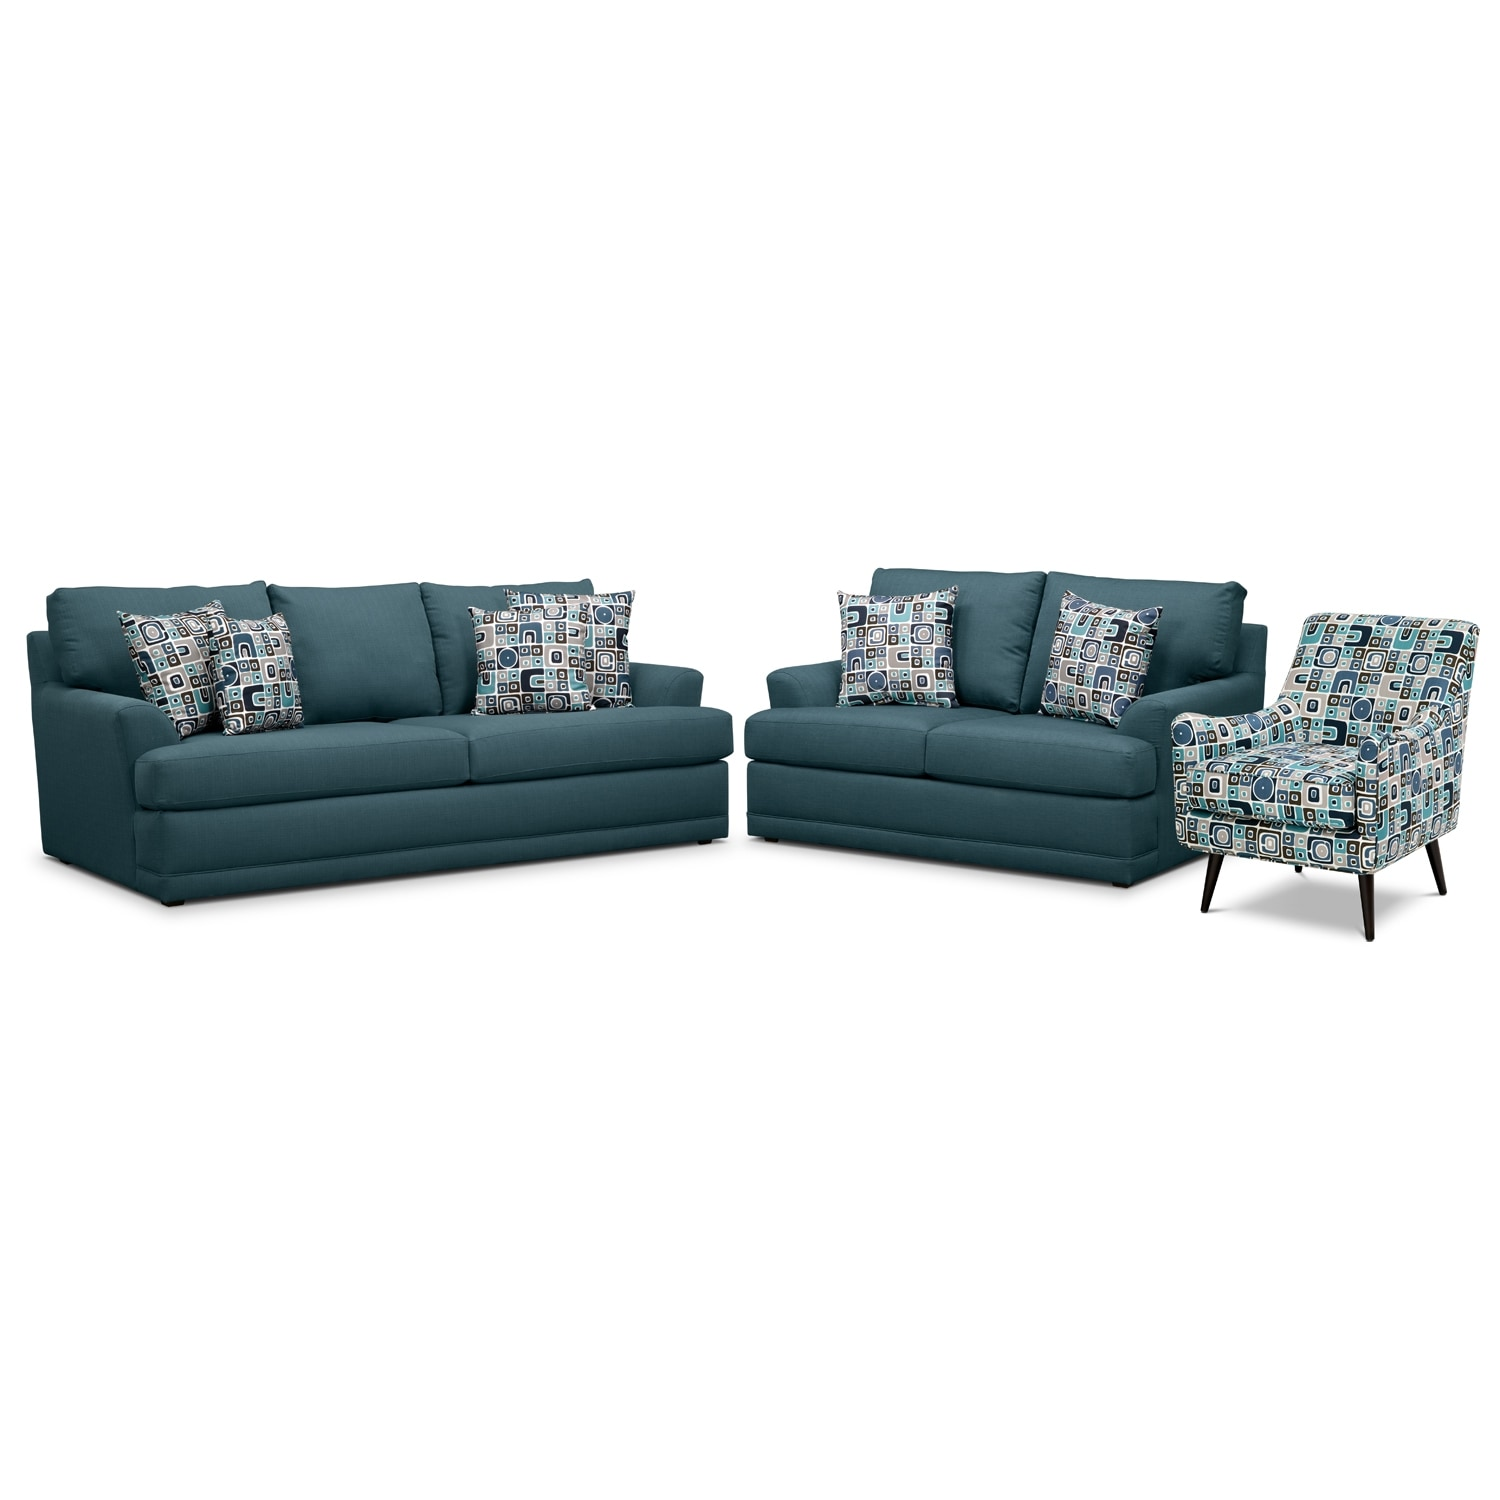 [Kismet 3 Pc. Sleeper Living Room with Accent Chair and Memory Foam Mattress - Teal]